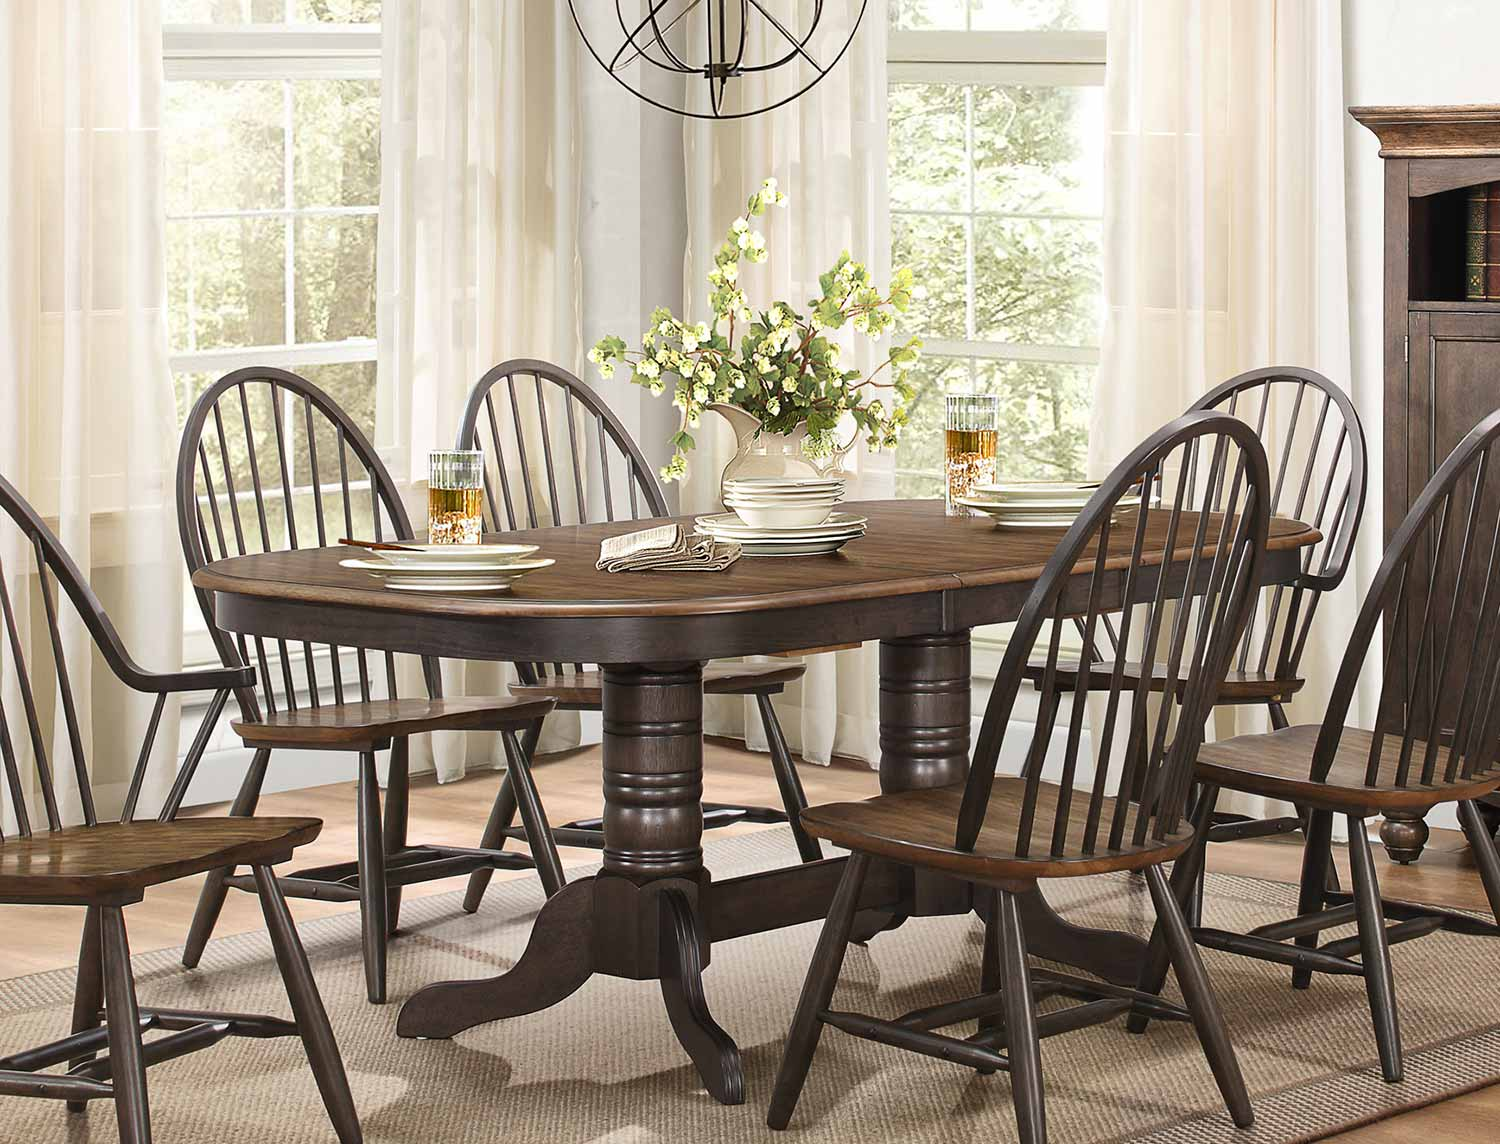 Homelegance Cline Rectangular Double Pedestal Dining Table with Butterfly Leaf - Two tone finish